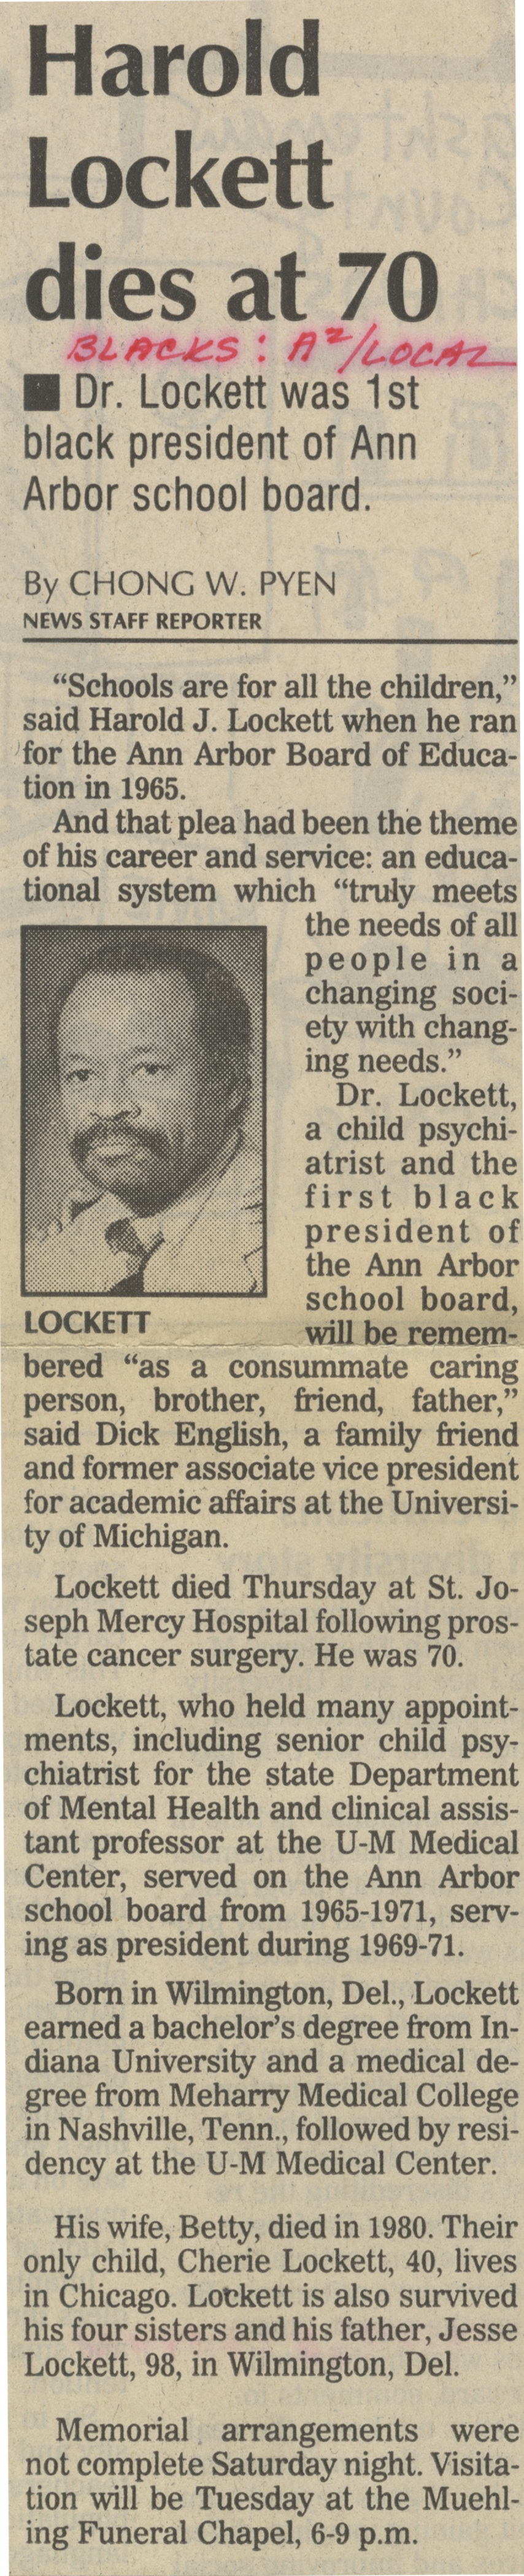 Harold Lockett Dies At 70 image